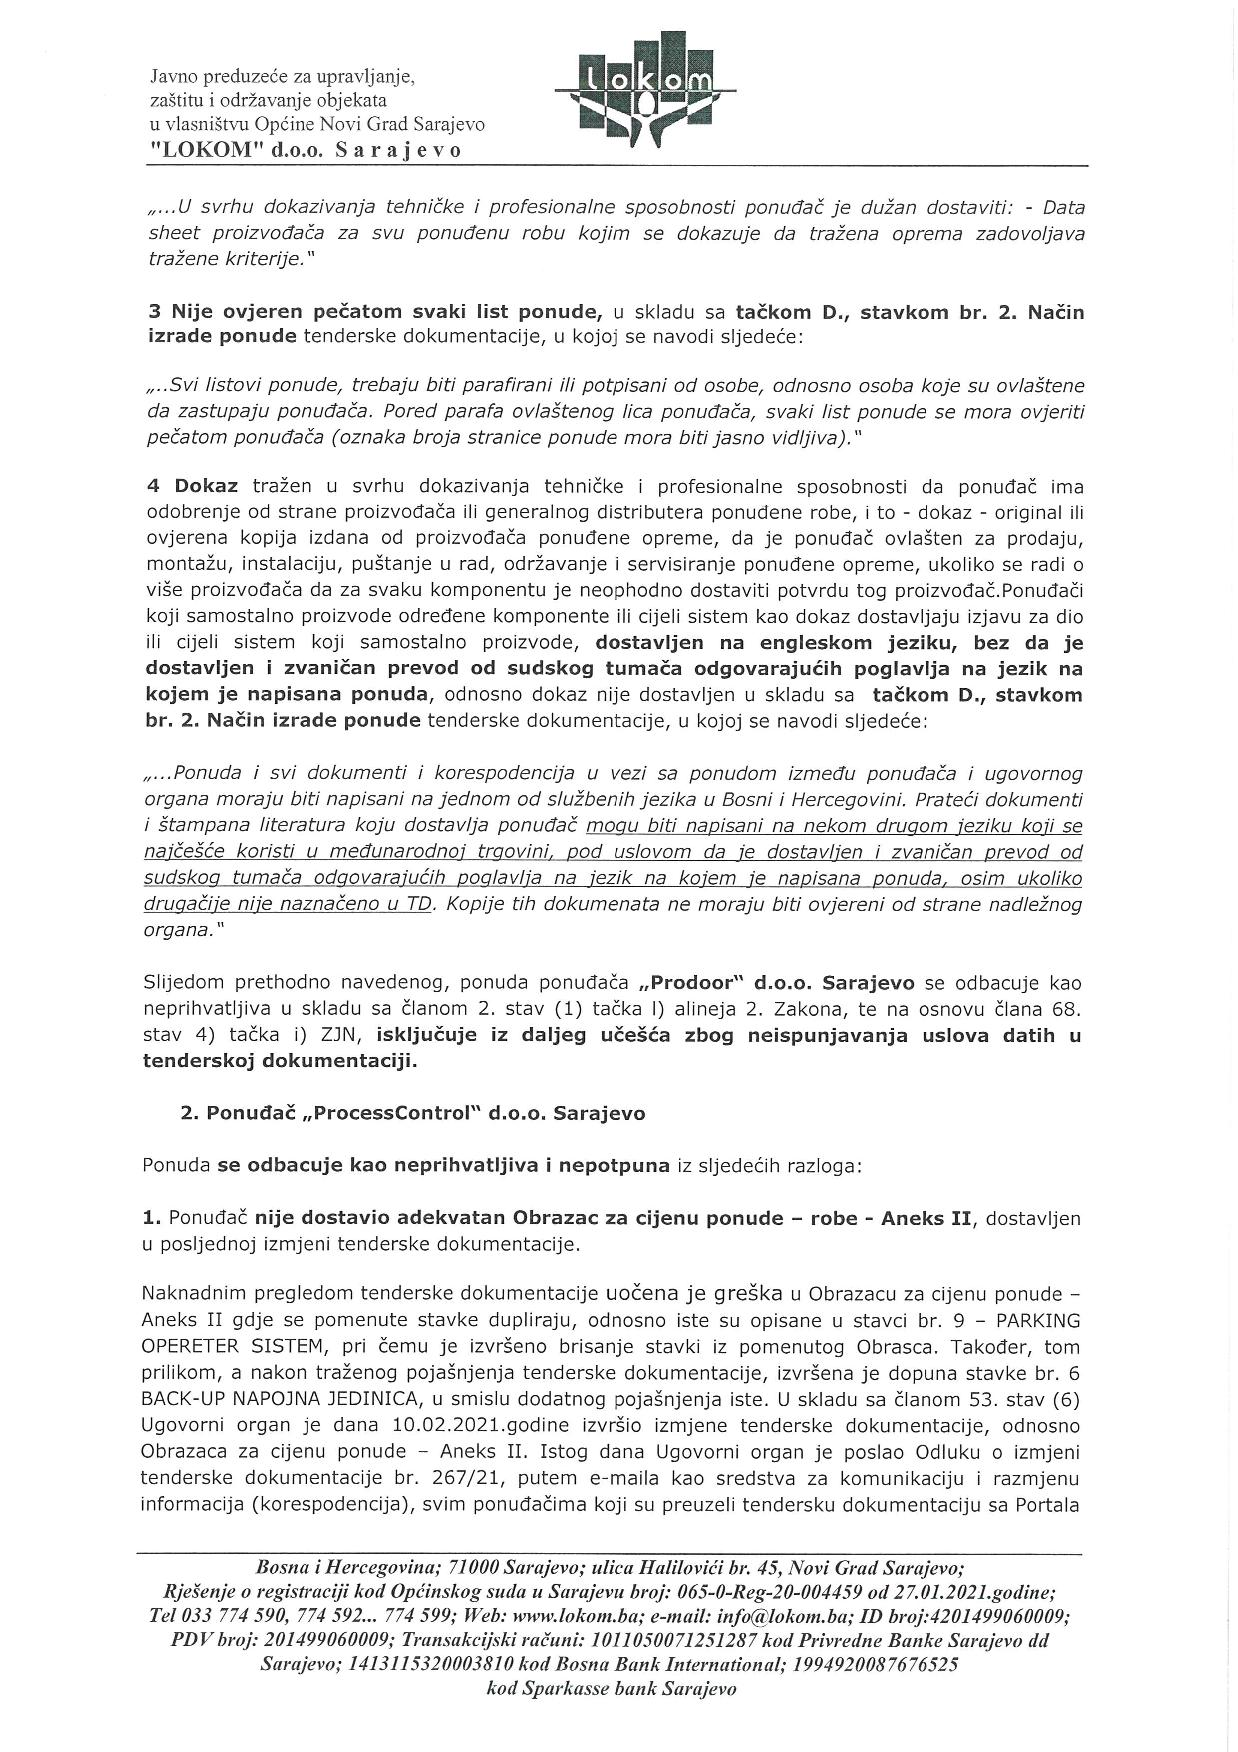 MX-M364N_20210223_100811-page-004